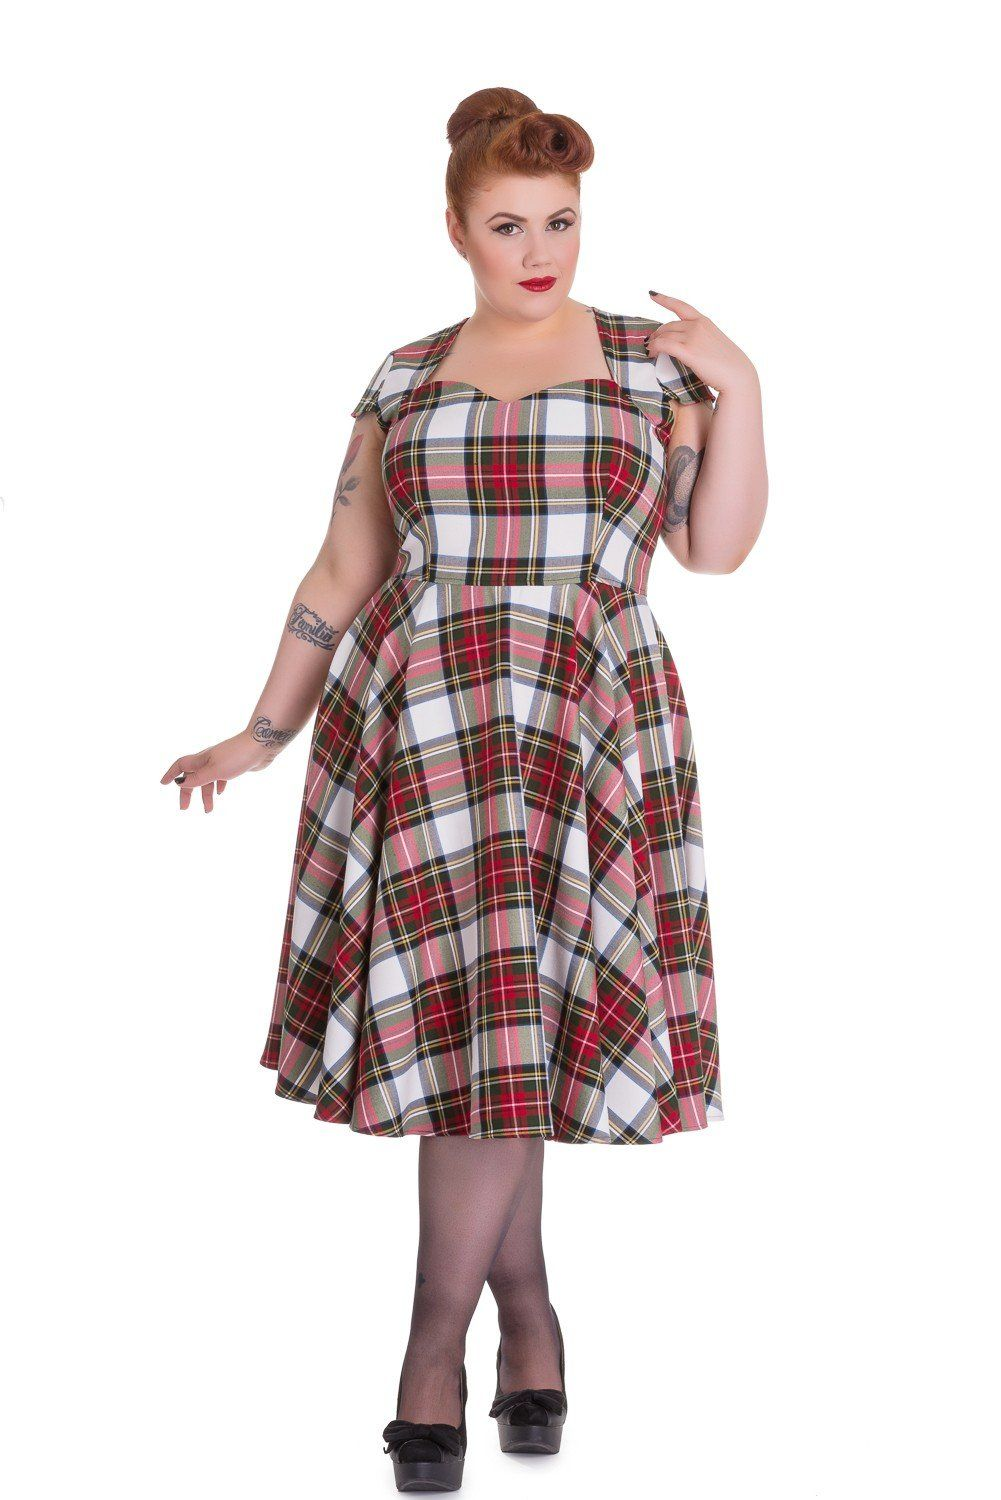 740f4ddd222ba8 Aberdeen Red Plaid Dress by Hell Bunny | Millie Girl Style! | Tartan ...